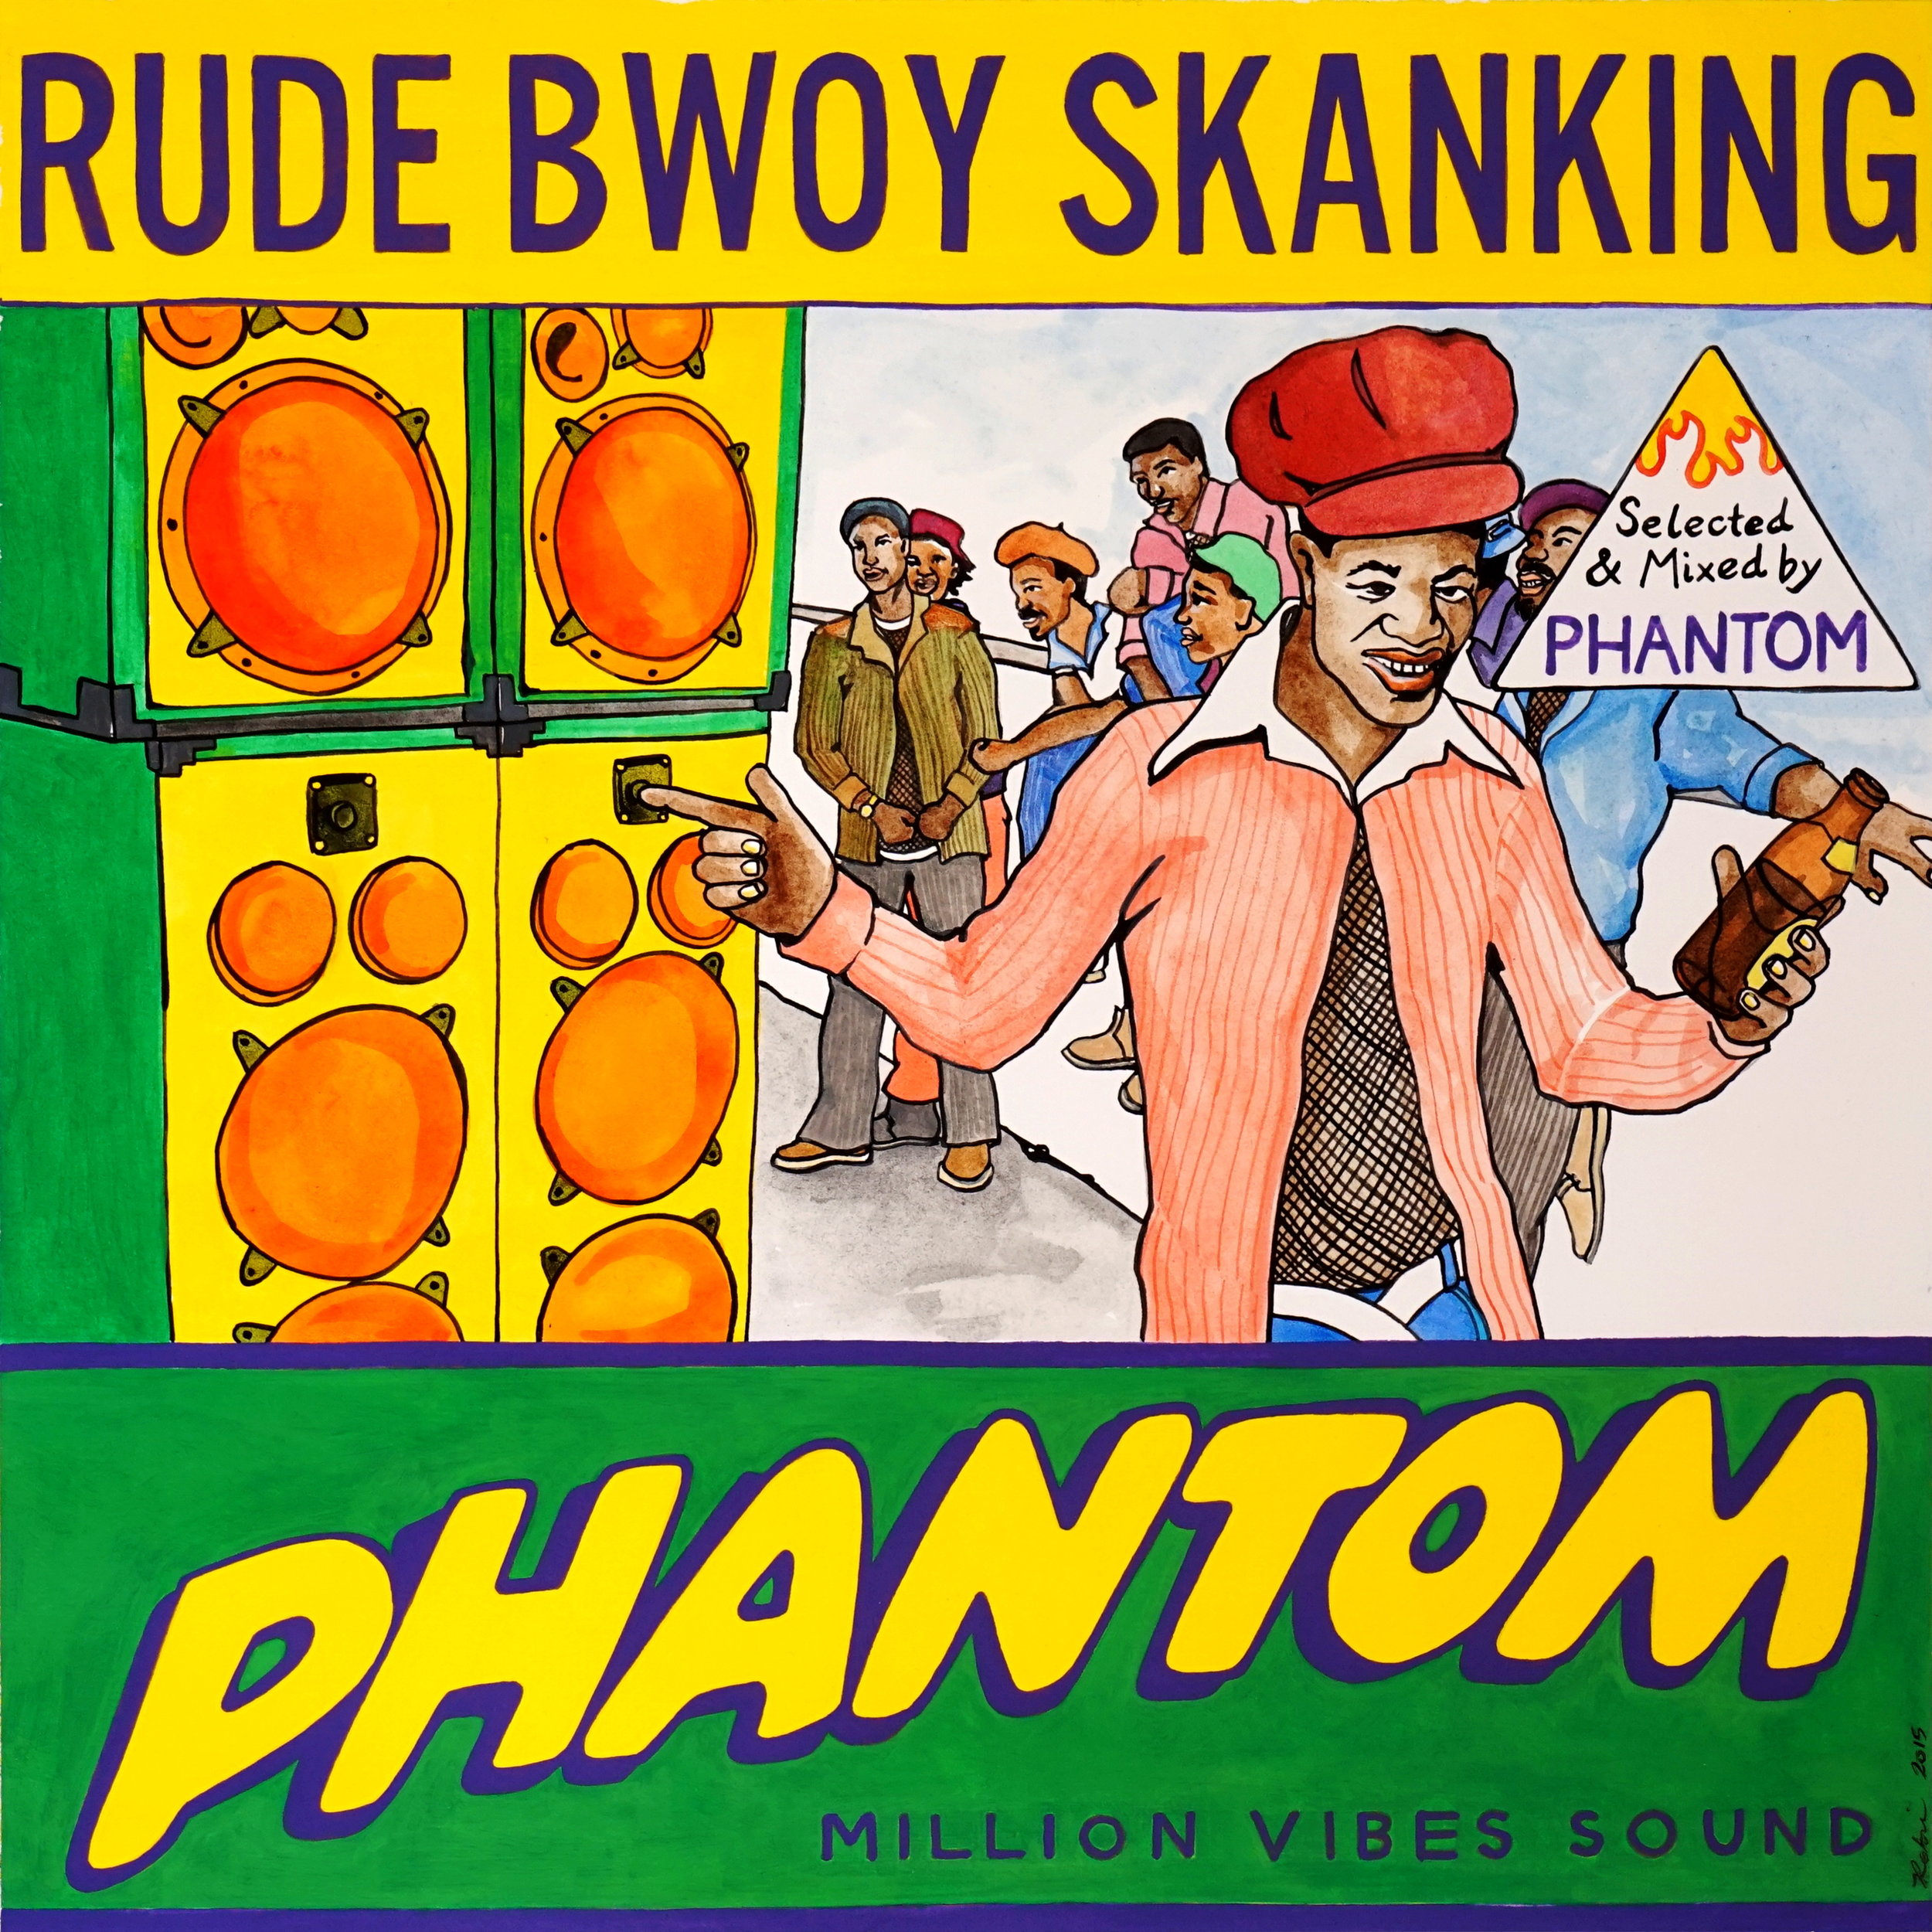 DJ Phantom (Million Vibes Sound) - Rude Bwoy Skanking (mixtape)